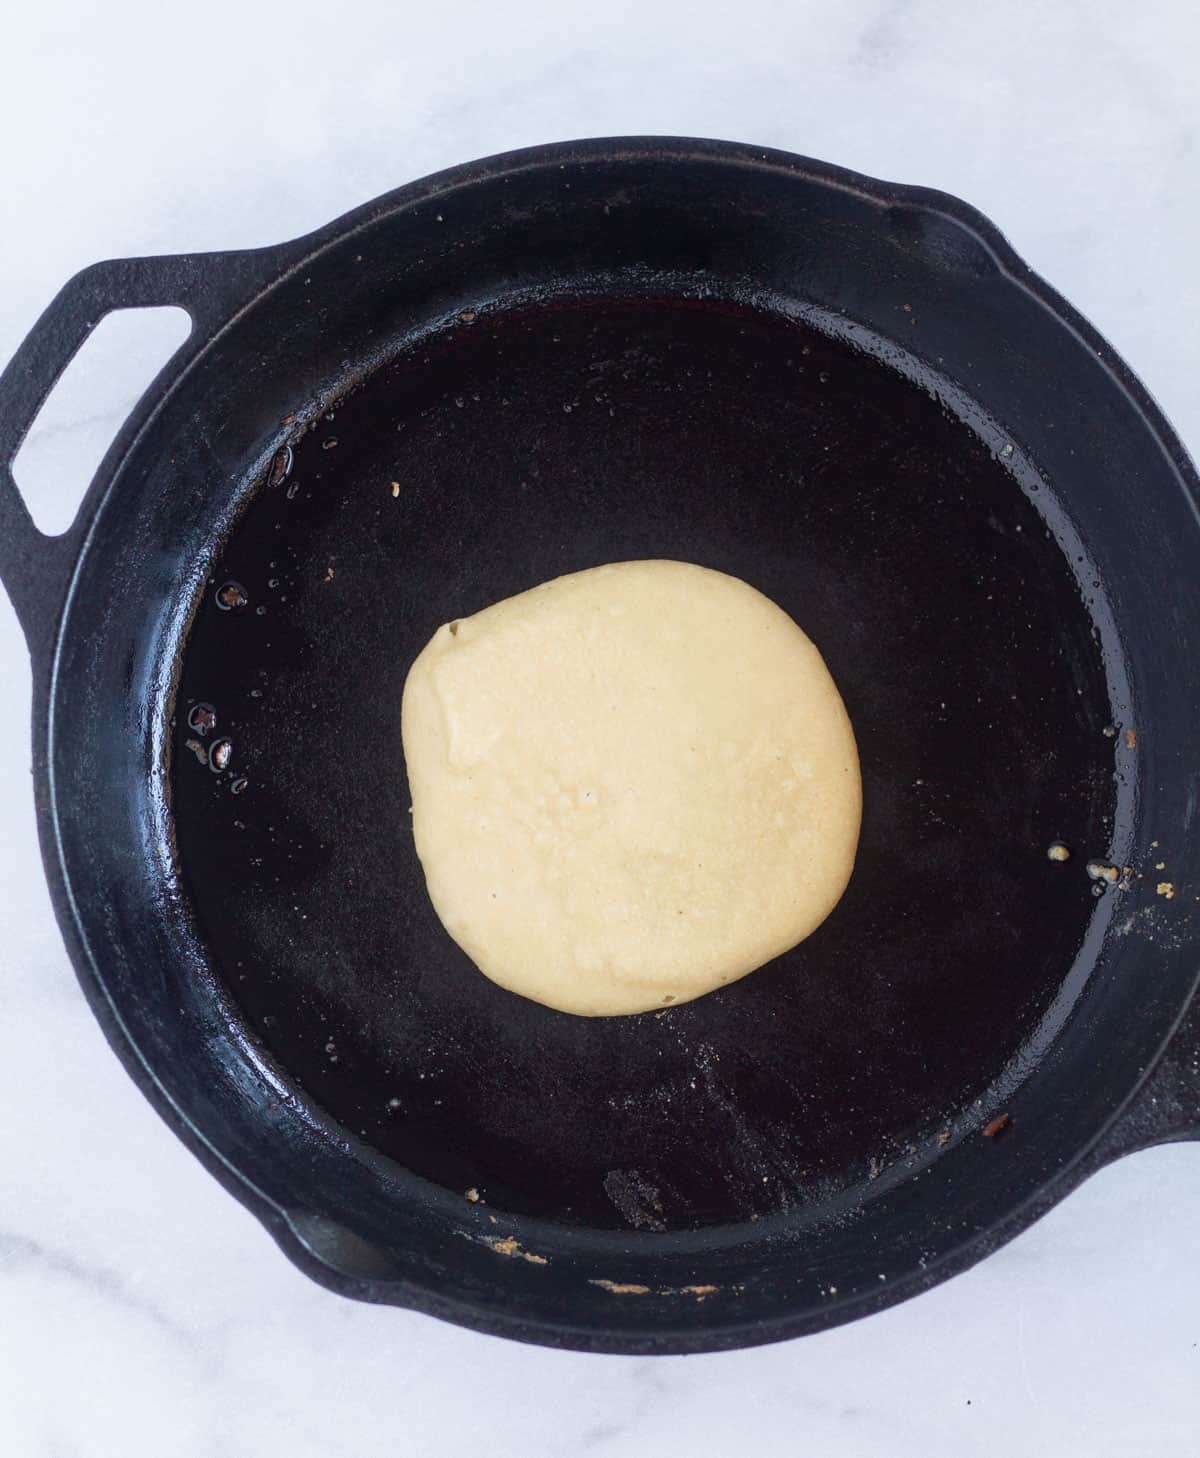 pancake cooking in cast iron skillet